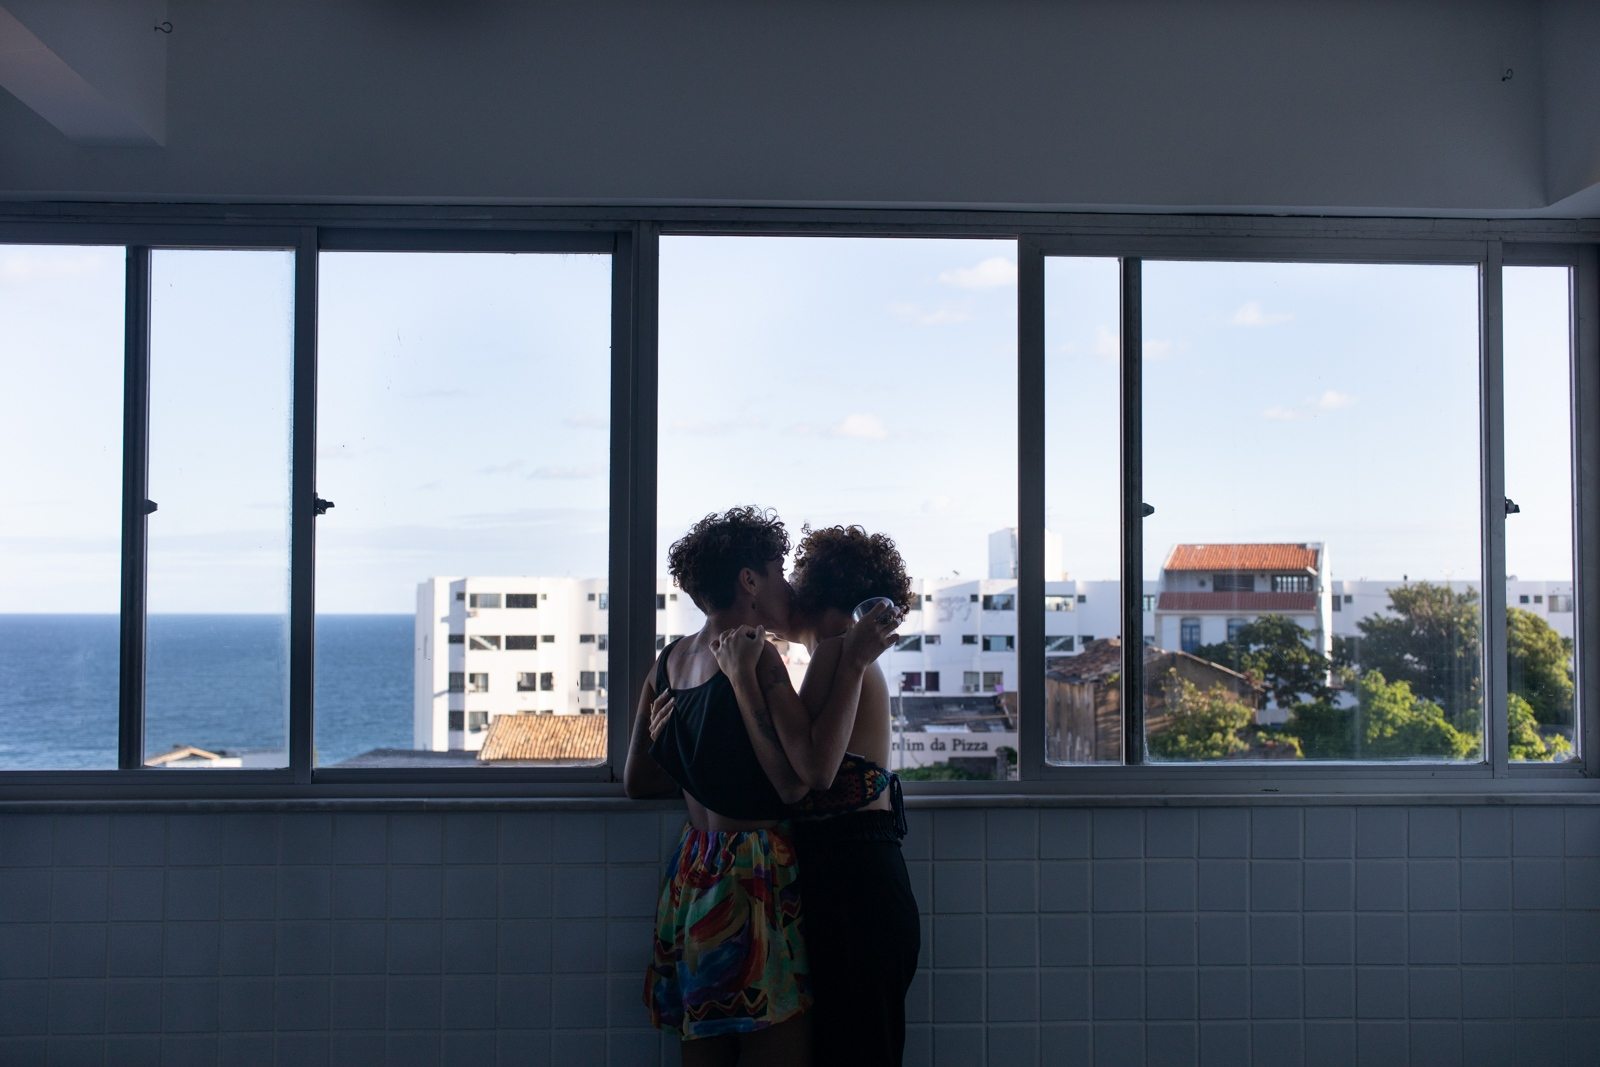 Jessica Magliano, 26 and her girlfriend Luana, kissing at the window of the social floor of the building in Salvador. They are now living in Salvador to study, coming from Joao Pessoa, Alagoas, where both frequents parties and gatherings from Tombamento generation. Both find Salvador a better city to live - in regards with studies. As a lesbian couple, they think the actual times are a hard moment to express themselves freely  as the radical  right wing is growing strongly in the country, they feel not entirely safe. Salvador.